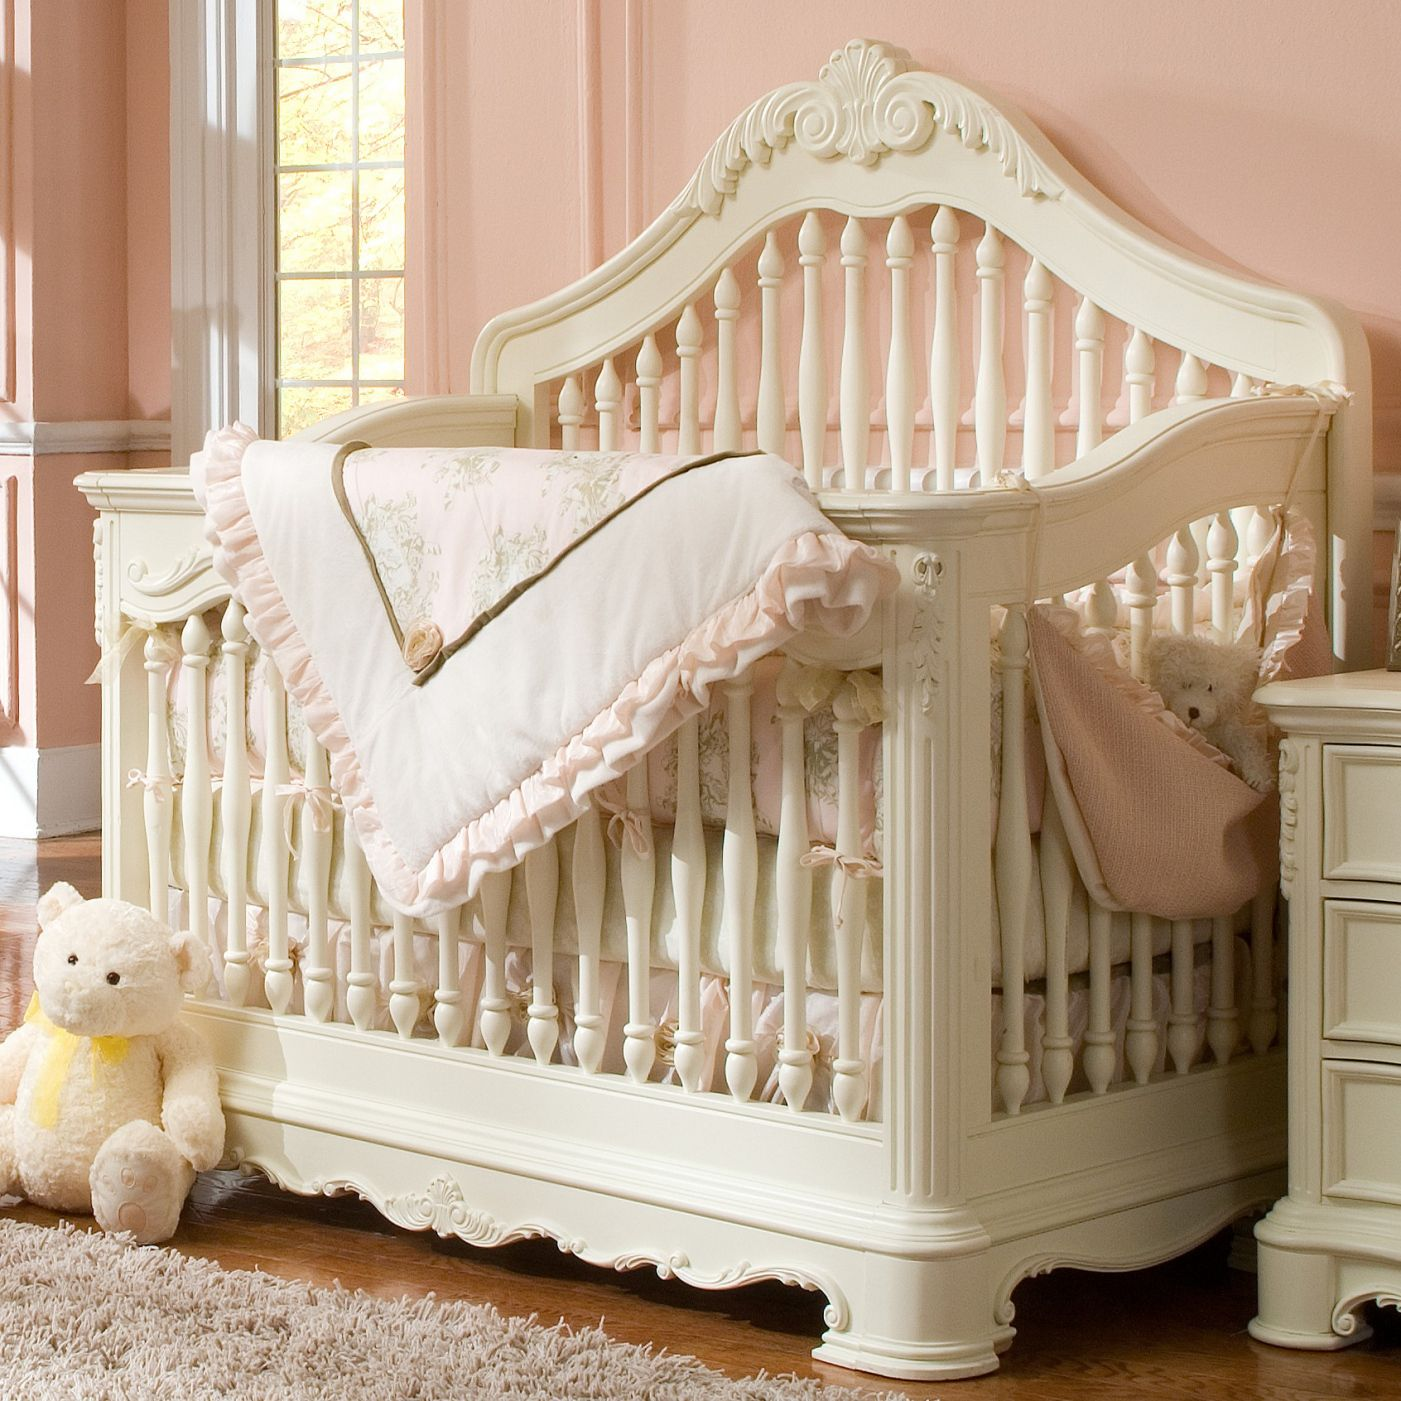 French Baby Furniture In 30 French Baby Furniture Bedroom Interior Design Ideas Check More At Http